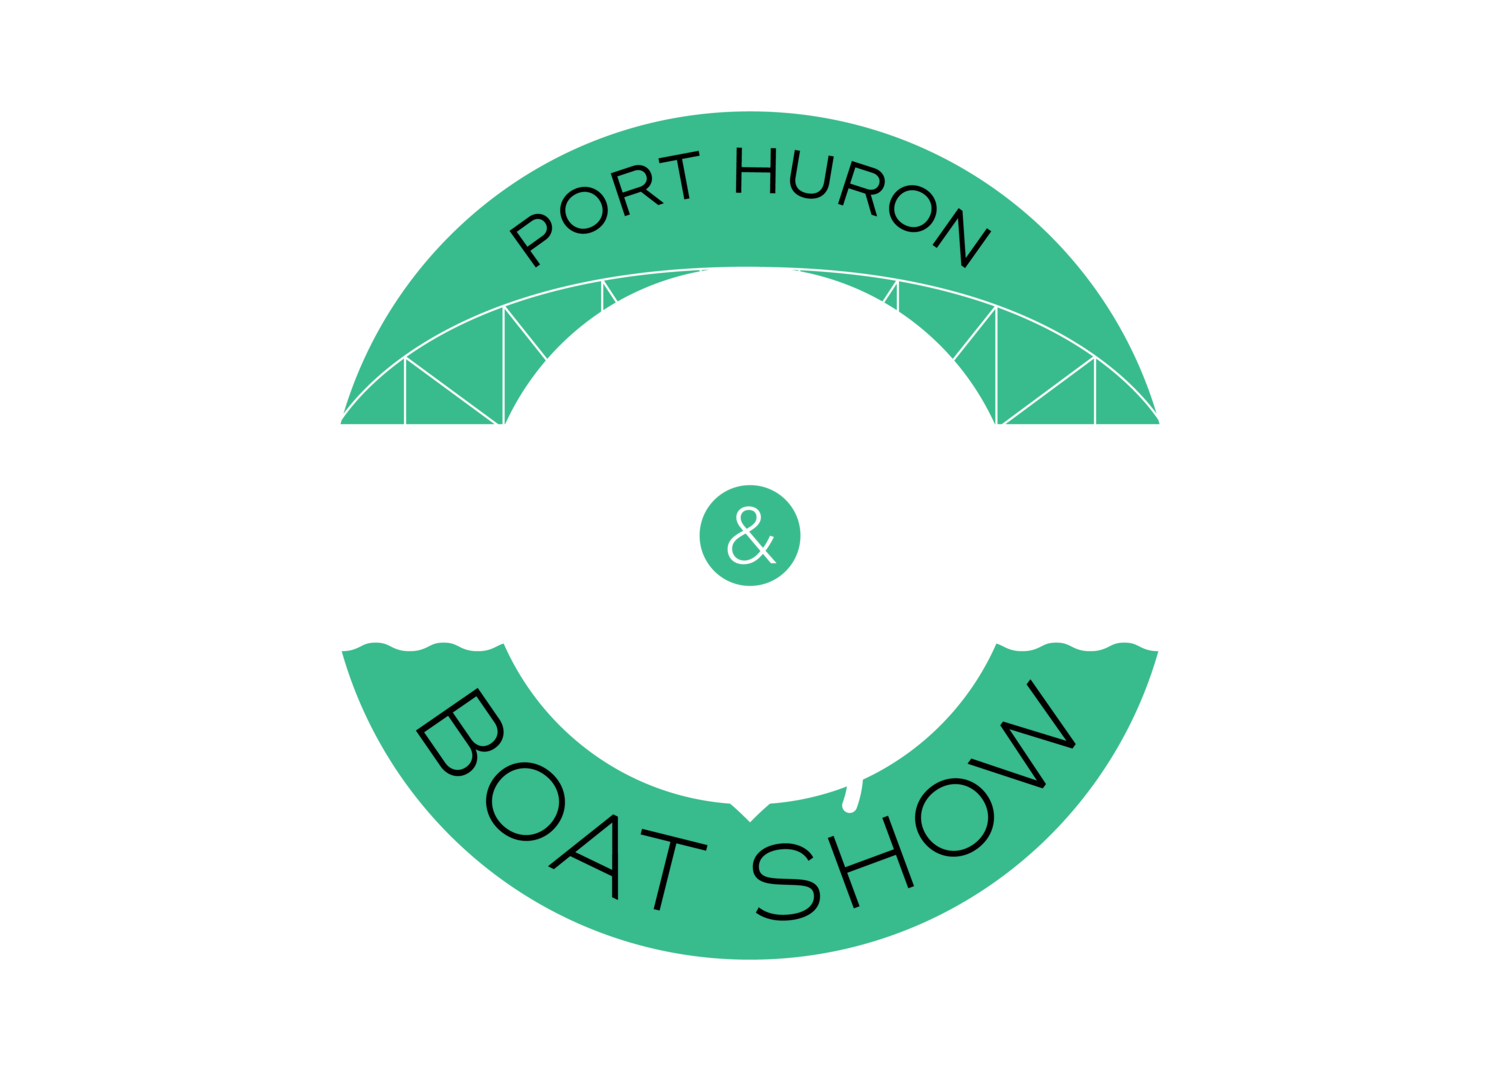 Port Huron Antique & classic boat show